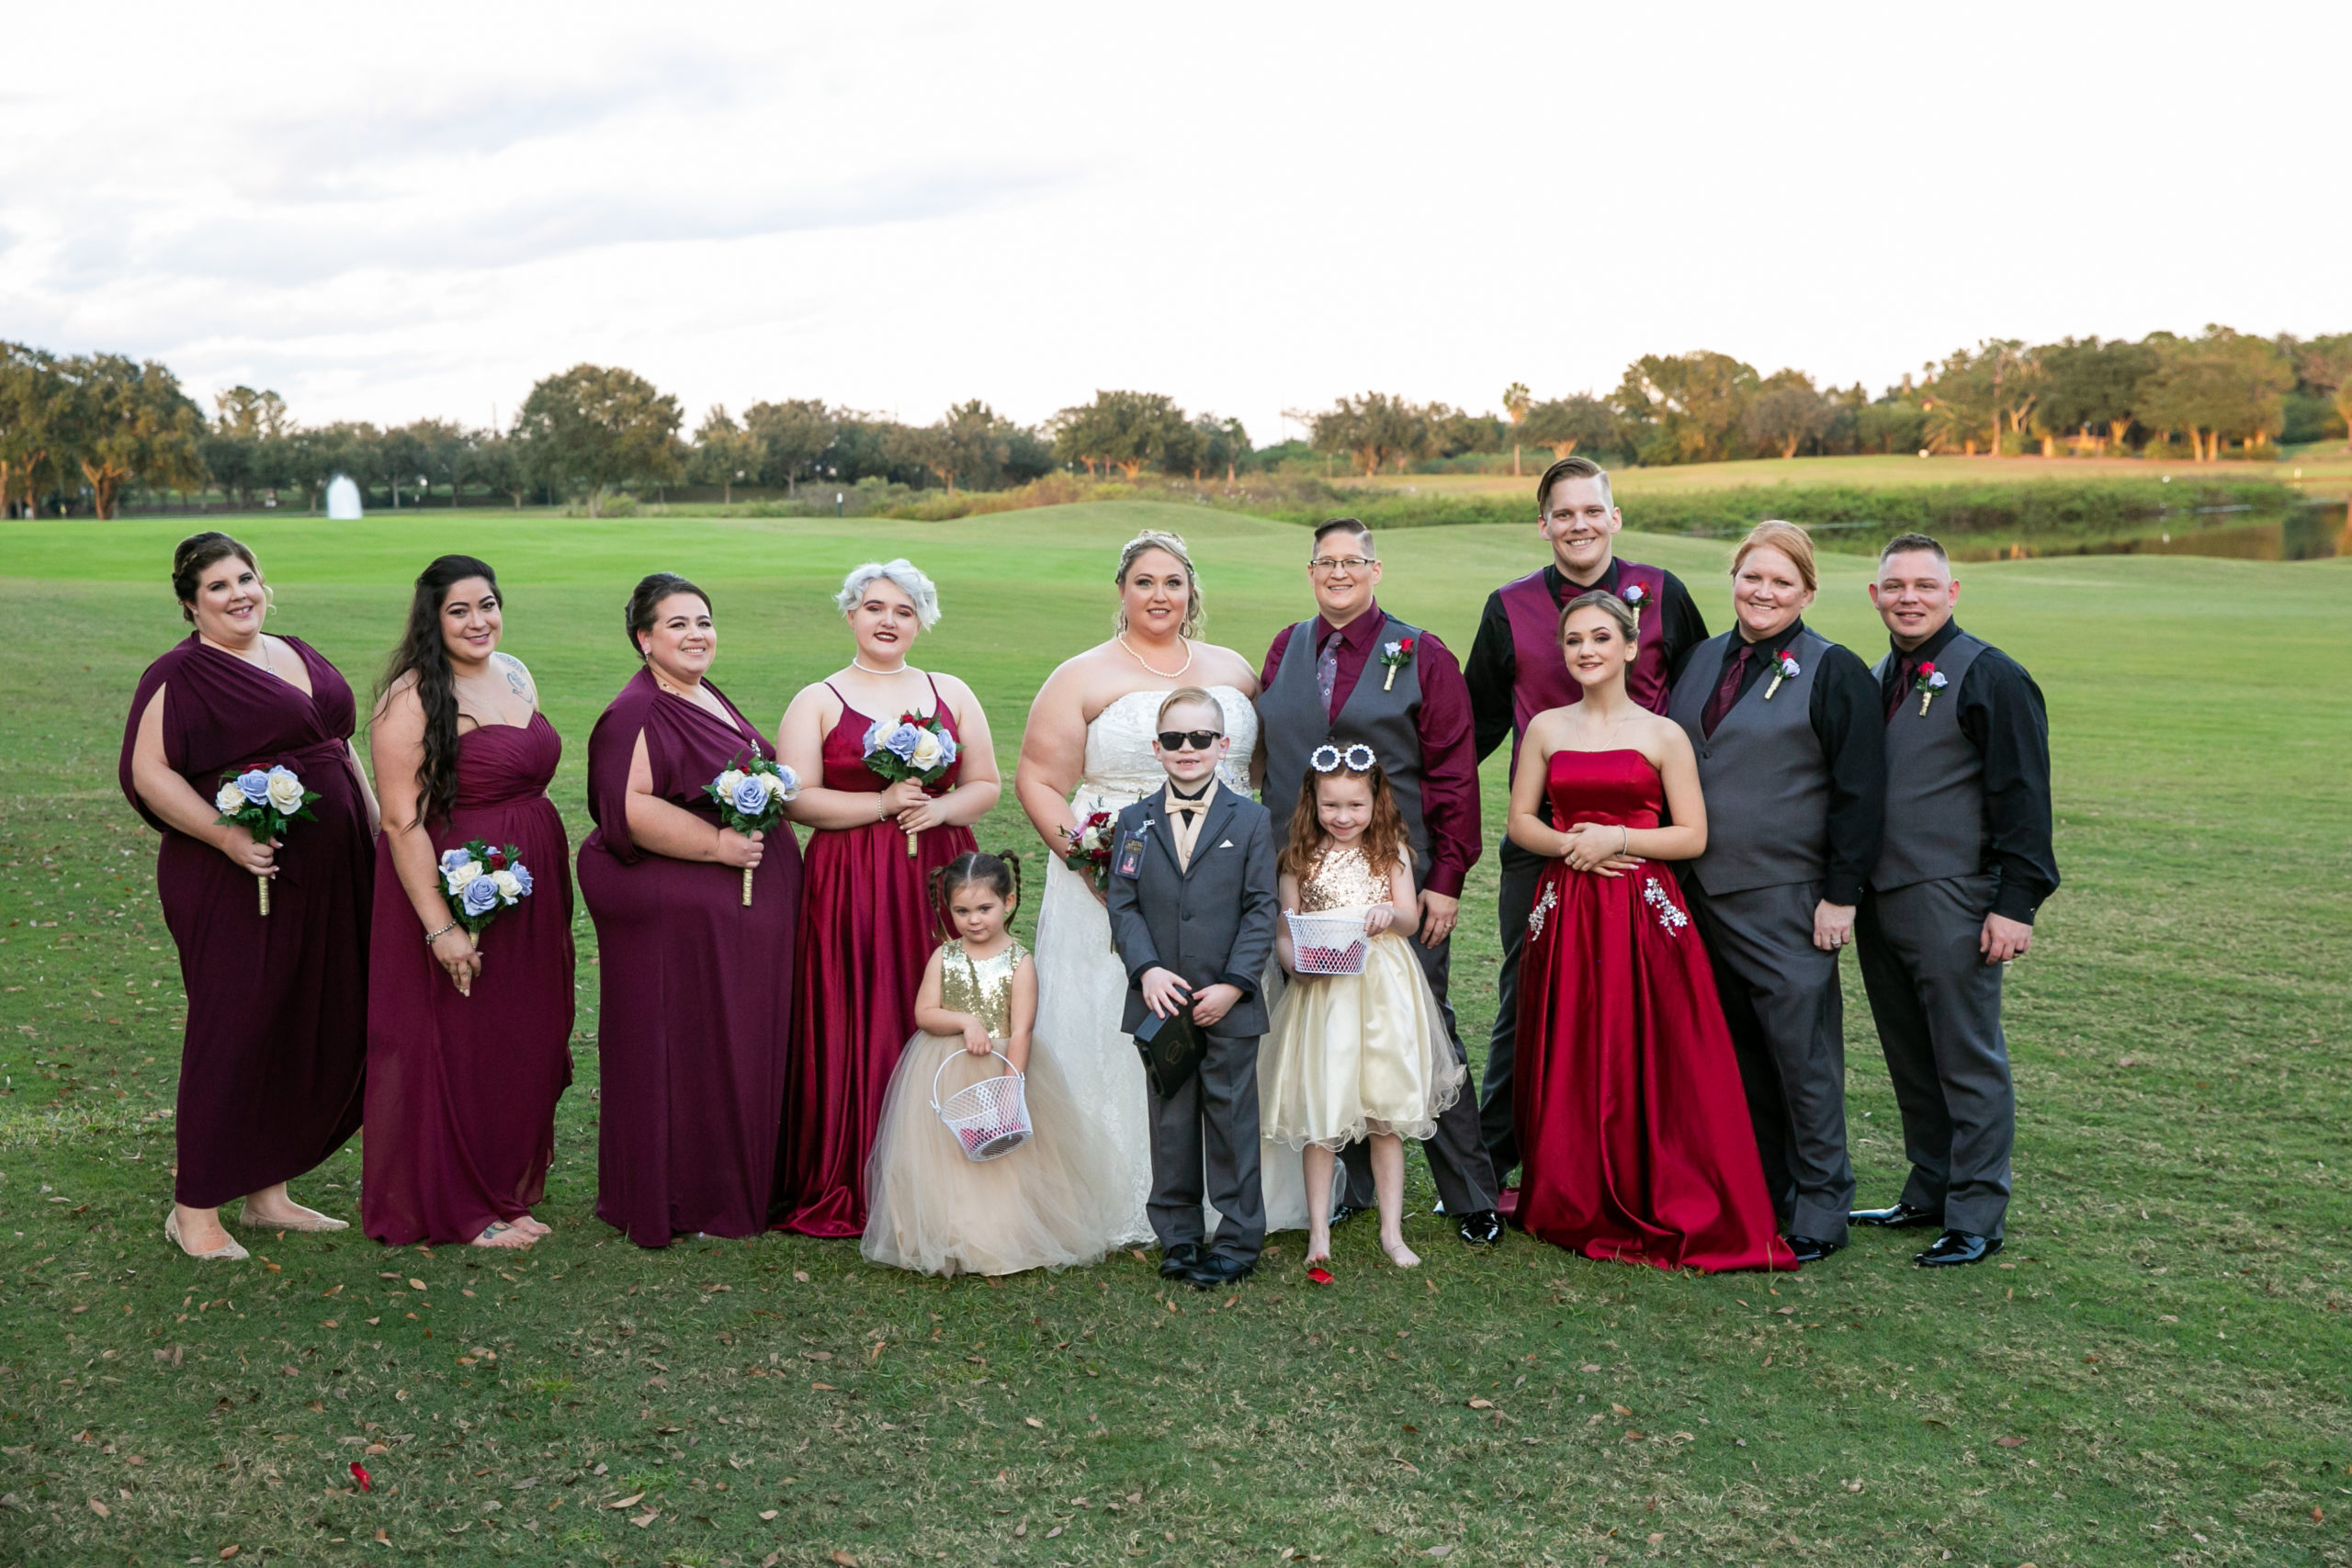 Burgundy Bridal Party Photo